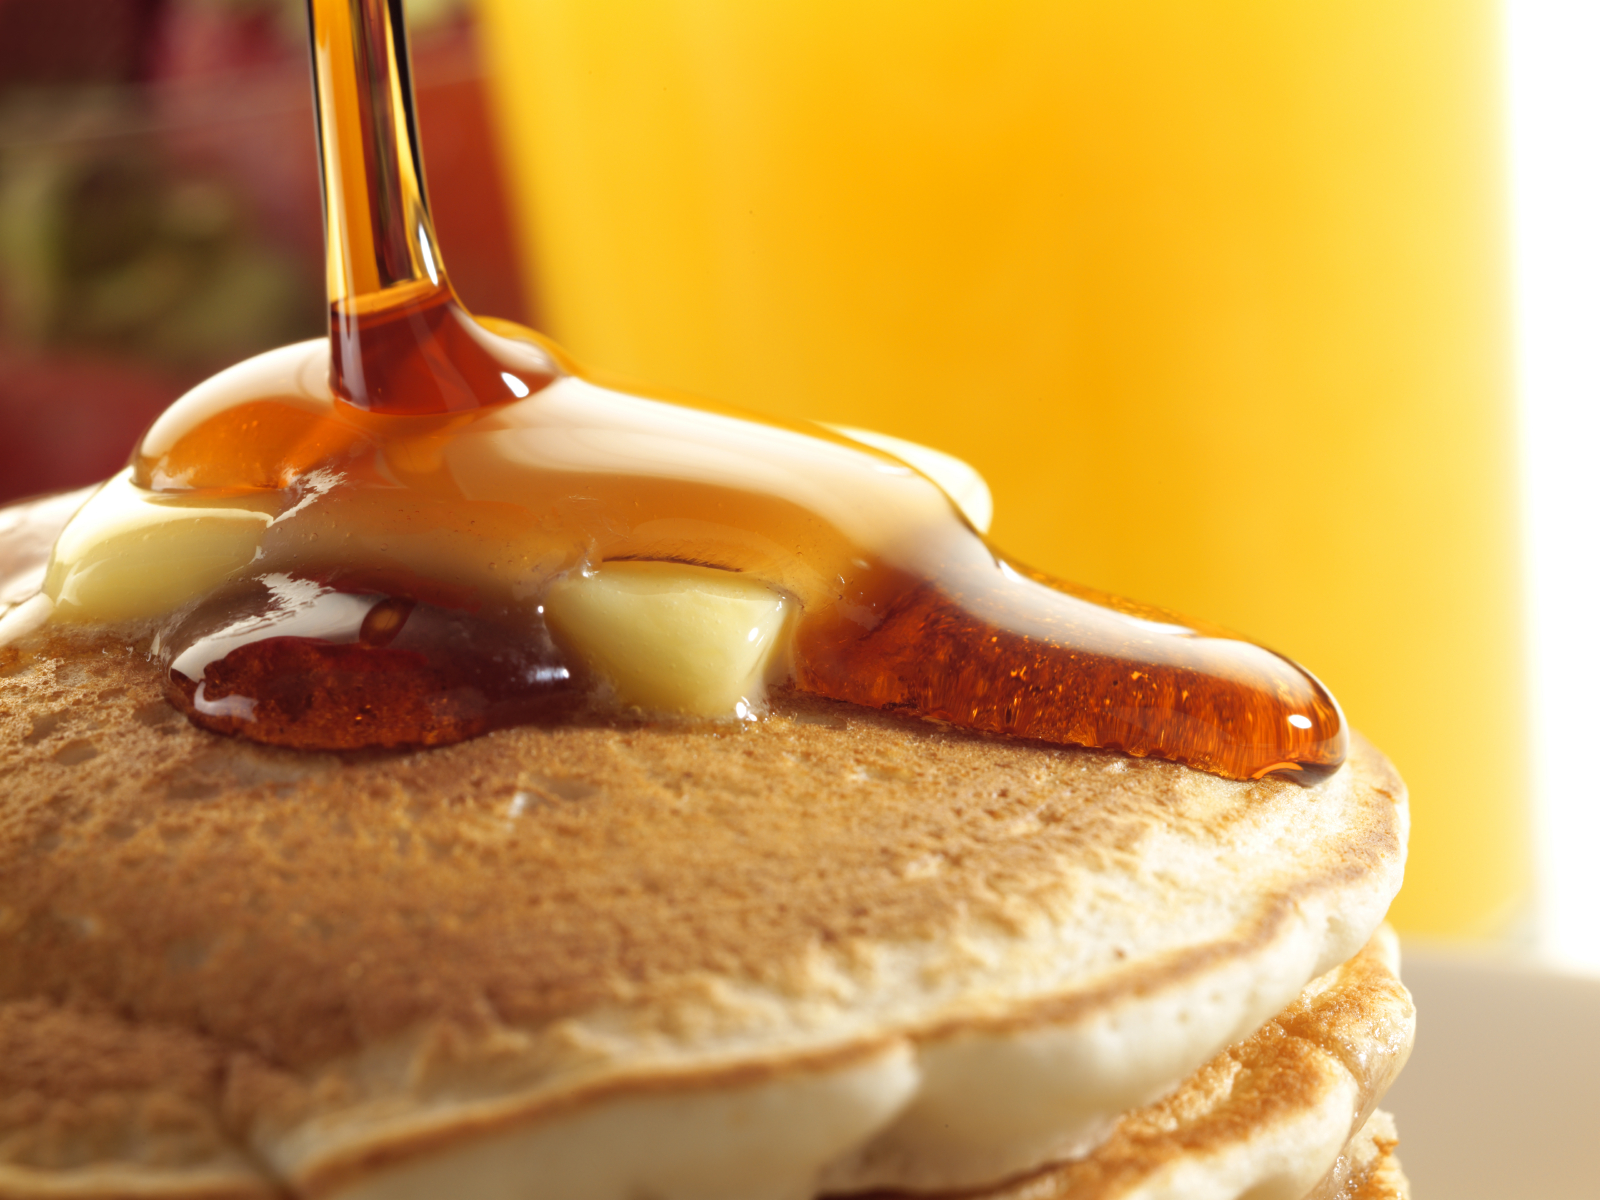 Hope Lutheran Church is holding an all-you-can-eat Pancake Breakfast on Saturday, May 17, from 7:30 – 11:00am to benefit Youth Challenge Florida/House of Hope.